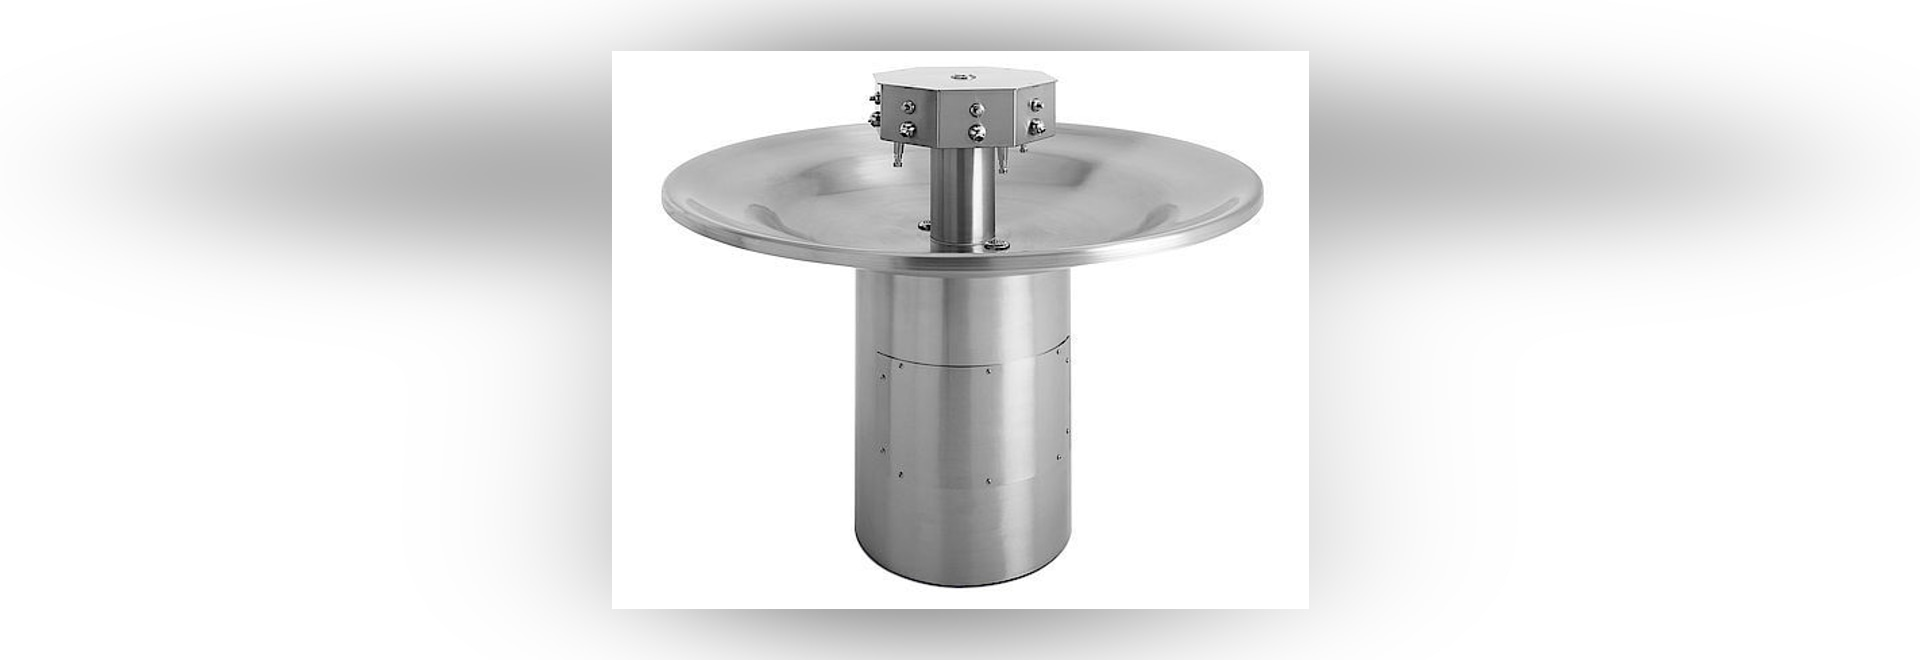 L-56 commercial hand basin by Lovair